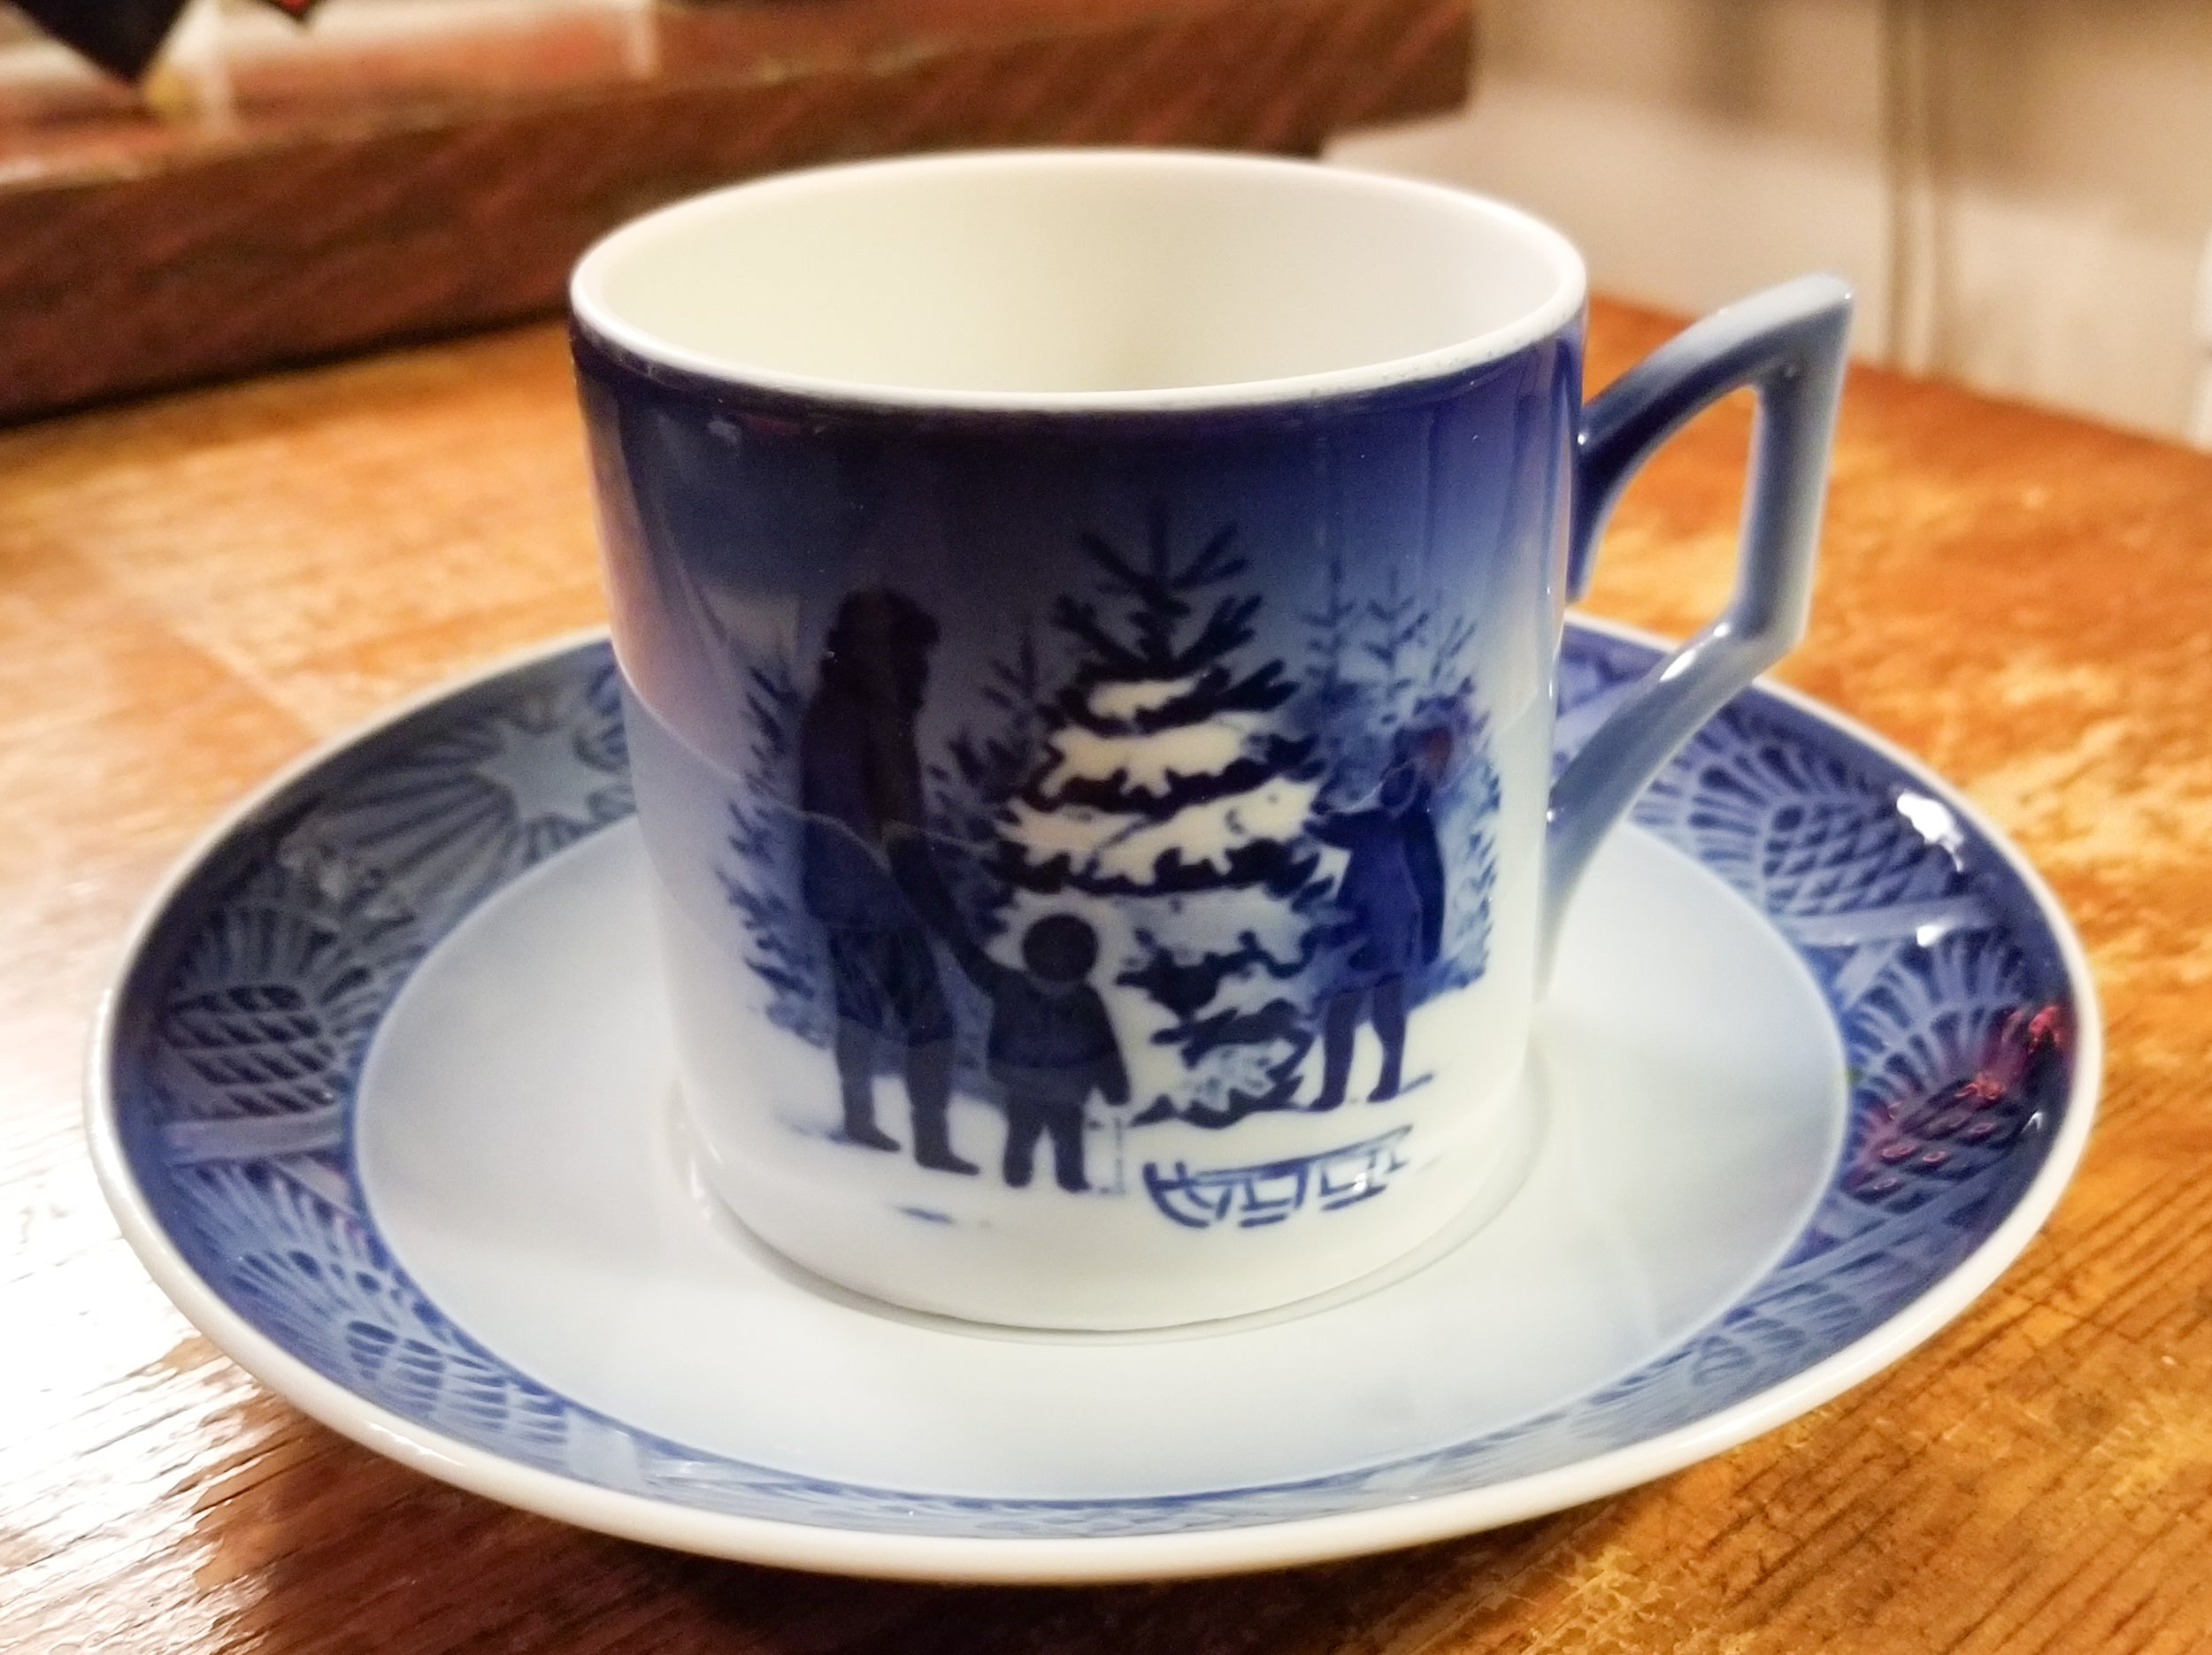 Choosing the Christmas Tree Cup & Saucer by ROYAL COPENHAGEN 1979